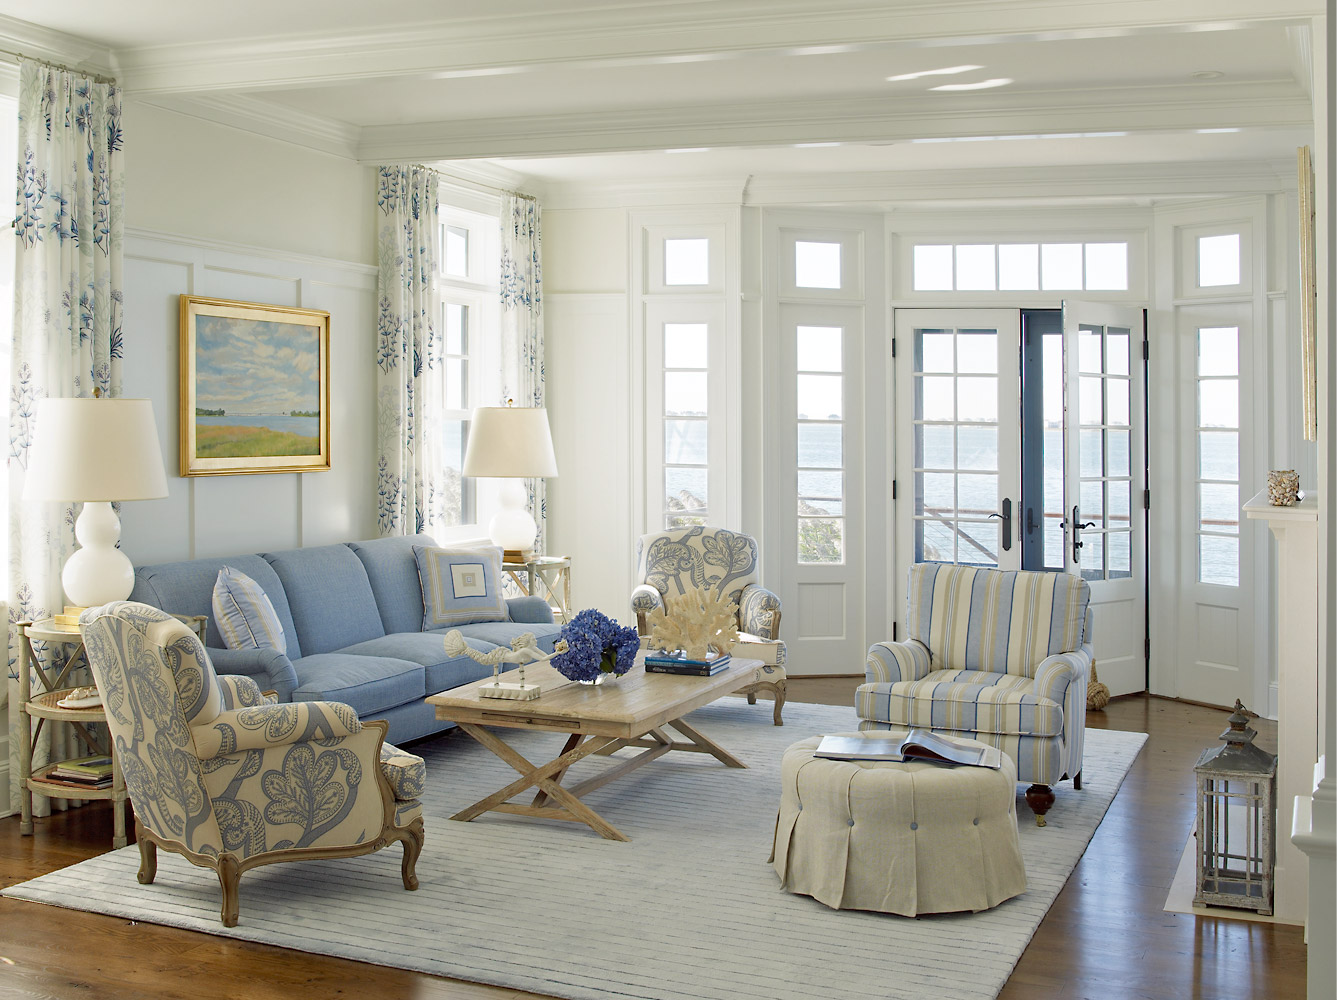 Decor inspiration nautical house on the bay cool chic for Beach house look interior design